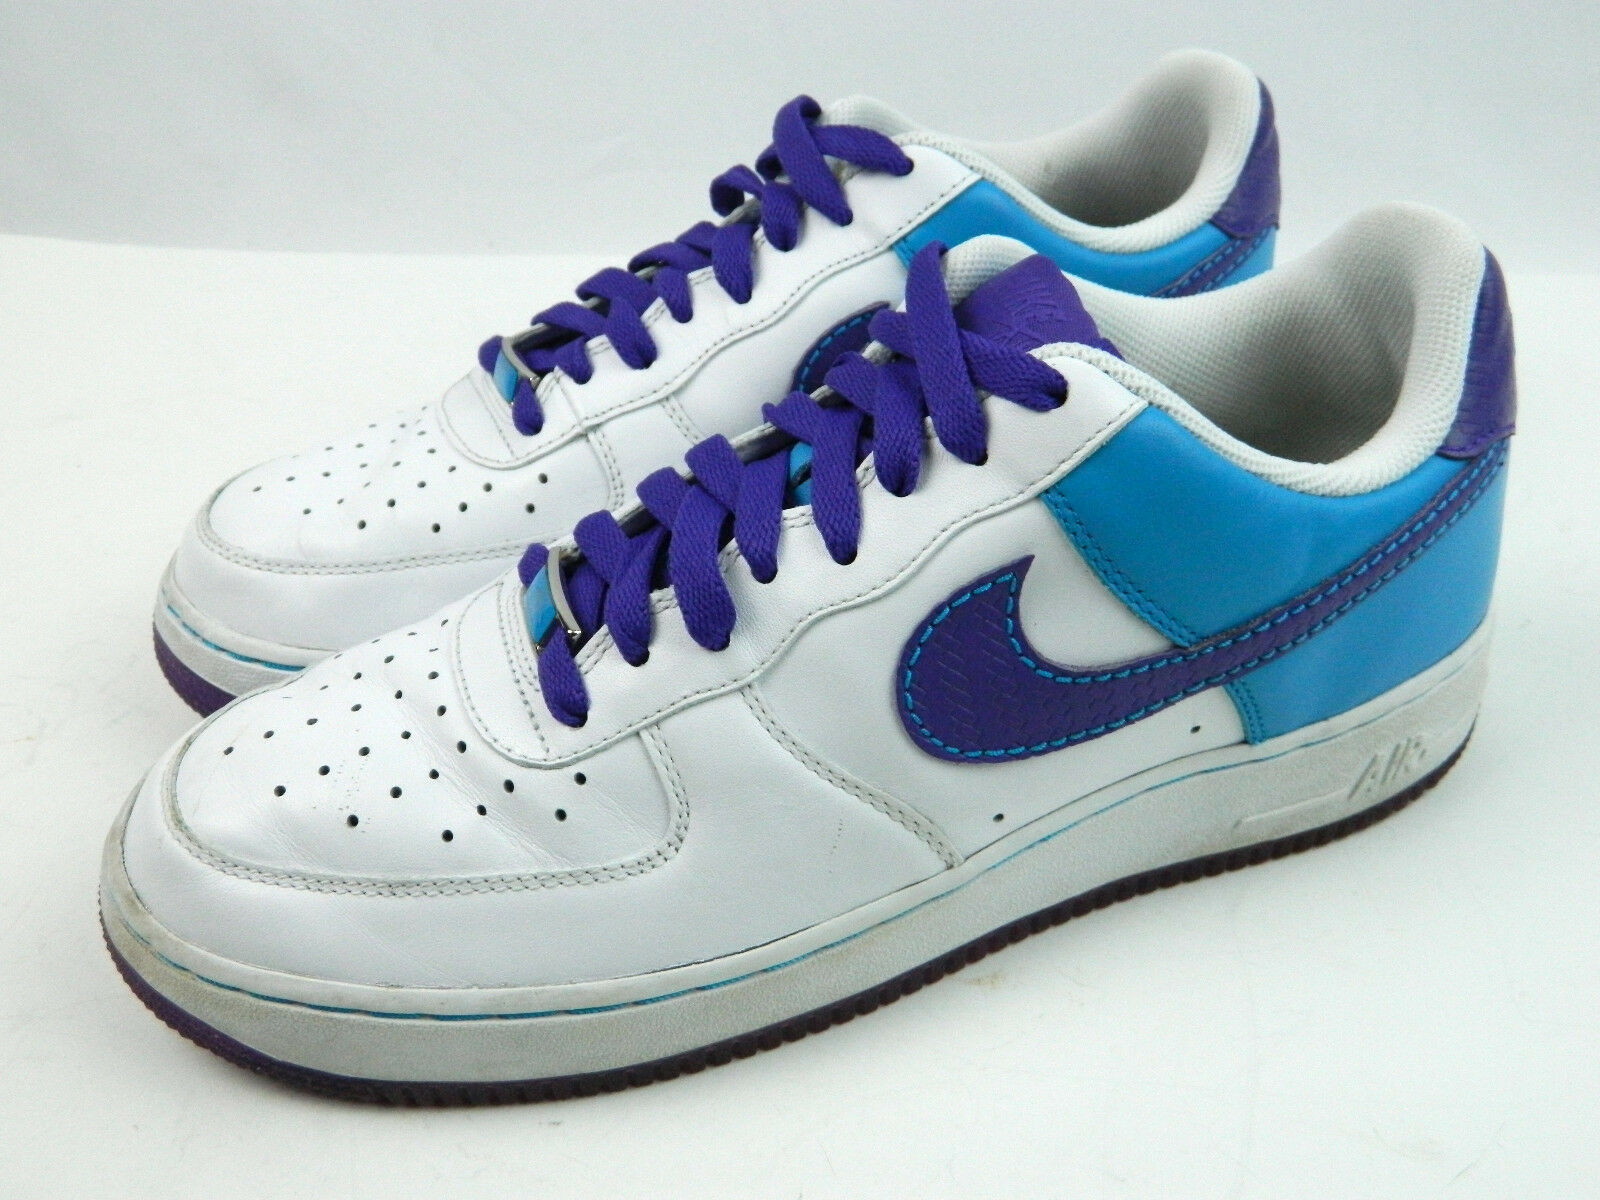 2007 Nike Air Force I '82 Purple bluee Samurai Hornets colors Size 9 M VG cond